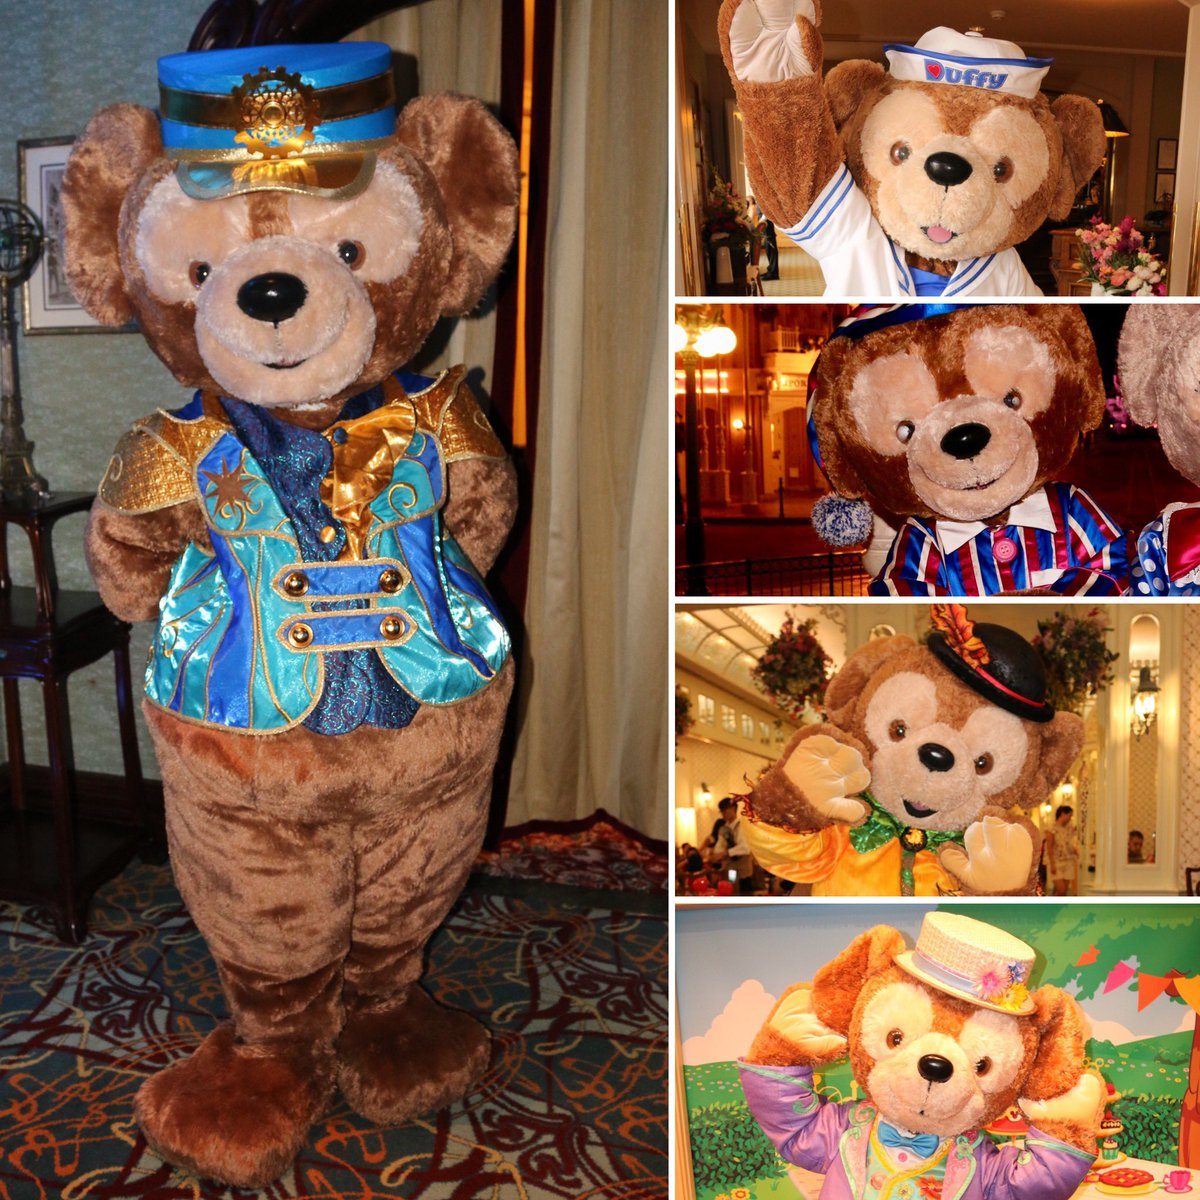 🧡💙THANK YOU 2019🧡💙I've been lucky to meet a favourite character of many fans many times this year! Take a look at the different outfits I've met him in during 2019!   #disneylandparis #disneyparks   #hongkongdisneyland #ダッフィー #duffythedisneybear #duffy   💙🐻2️⃣0️⃣1️⃣9️⃣🐻💙